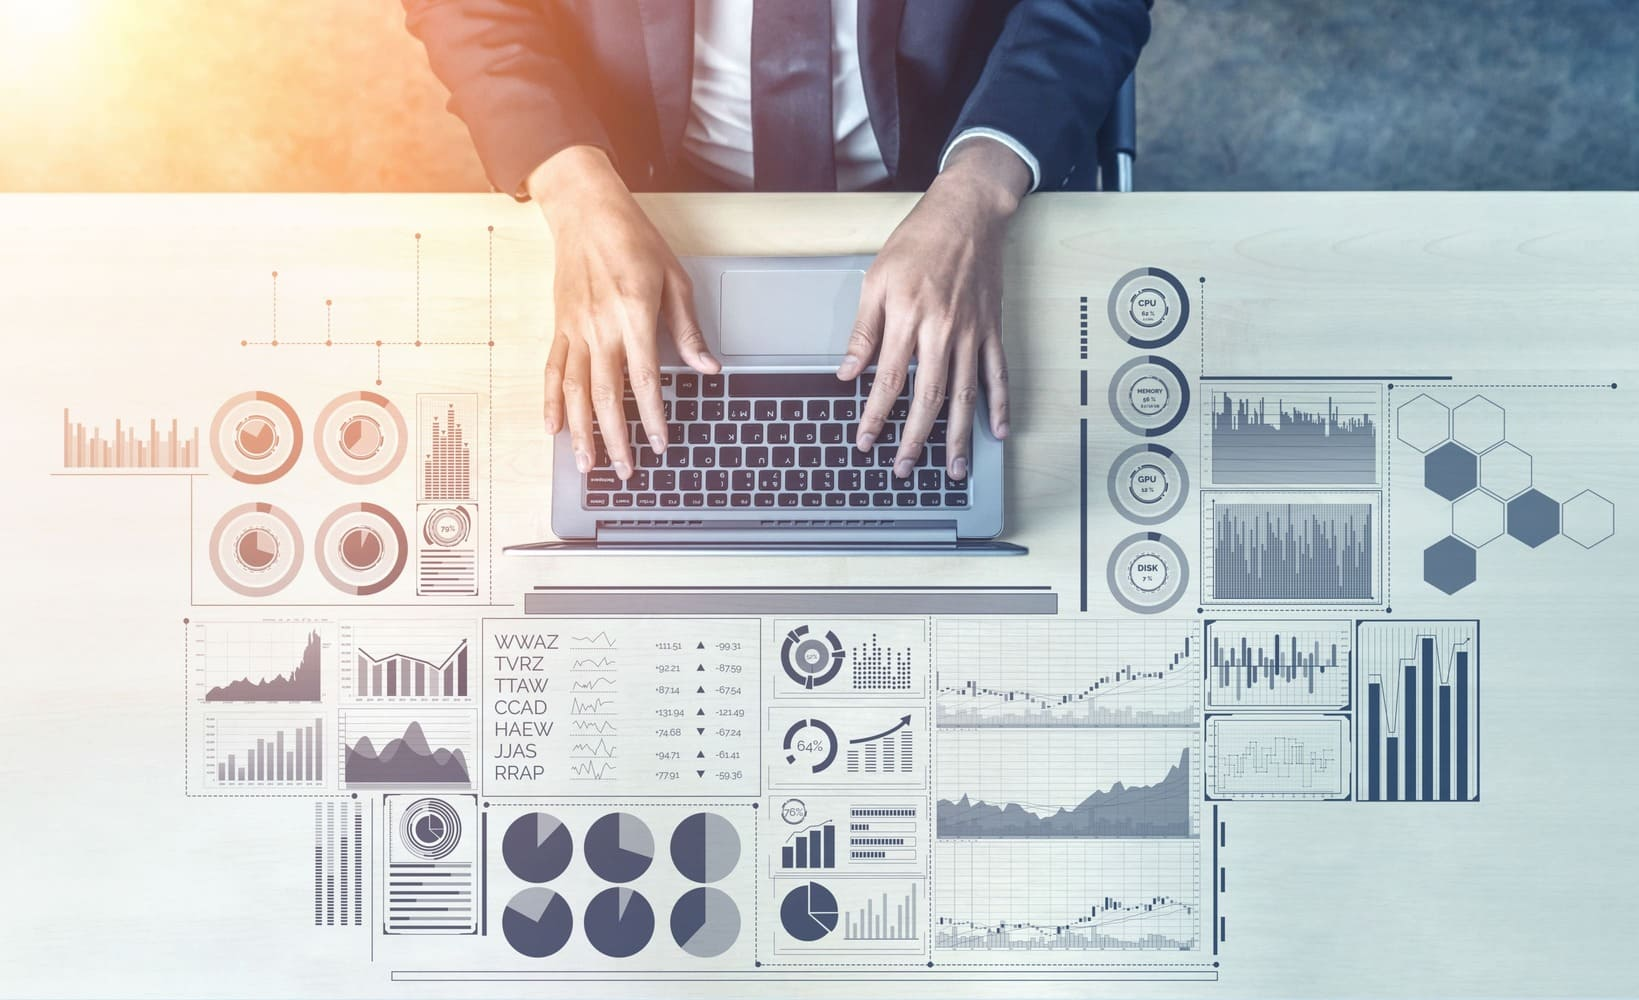 Clean Data Provides Crucial Insights for Growth & Development